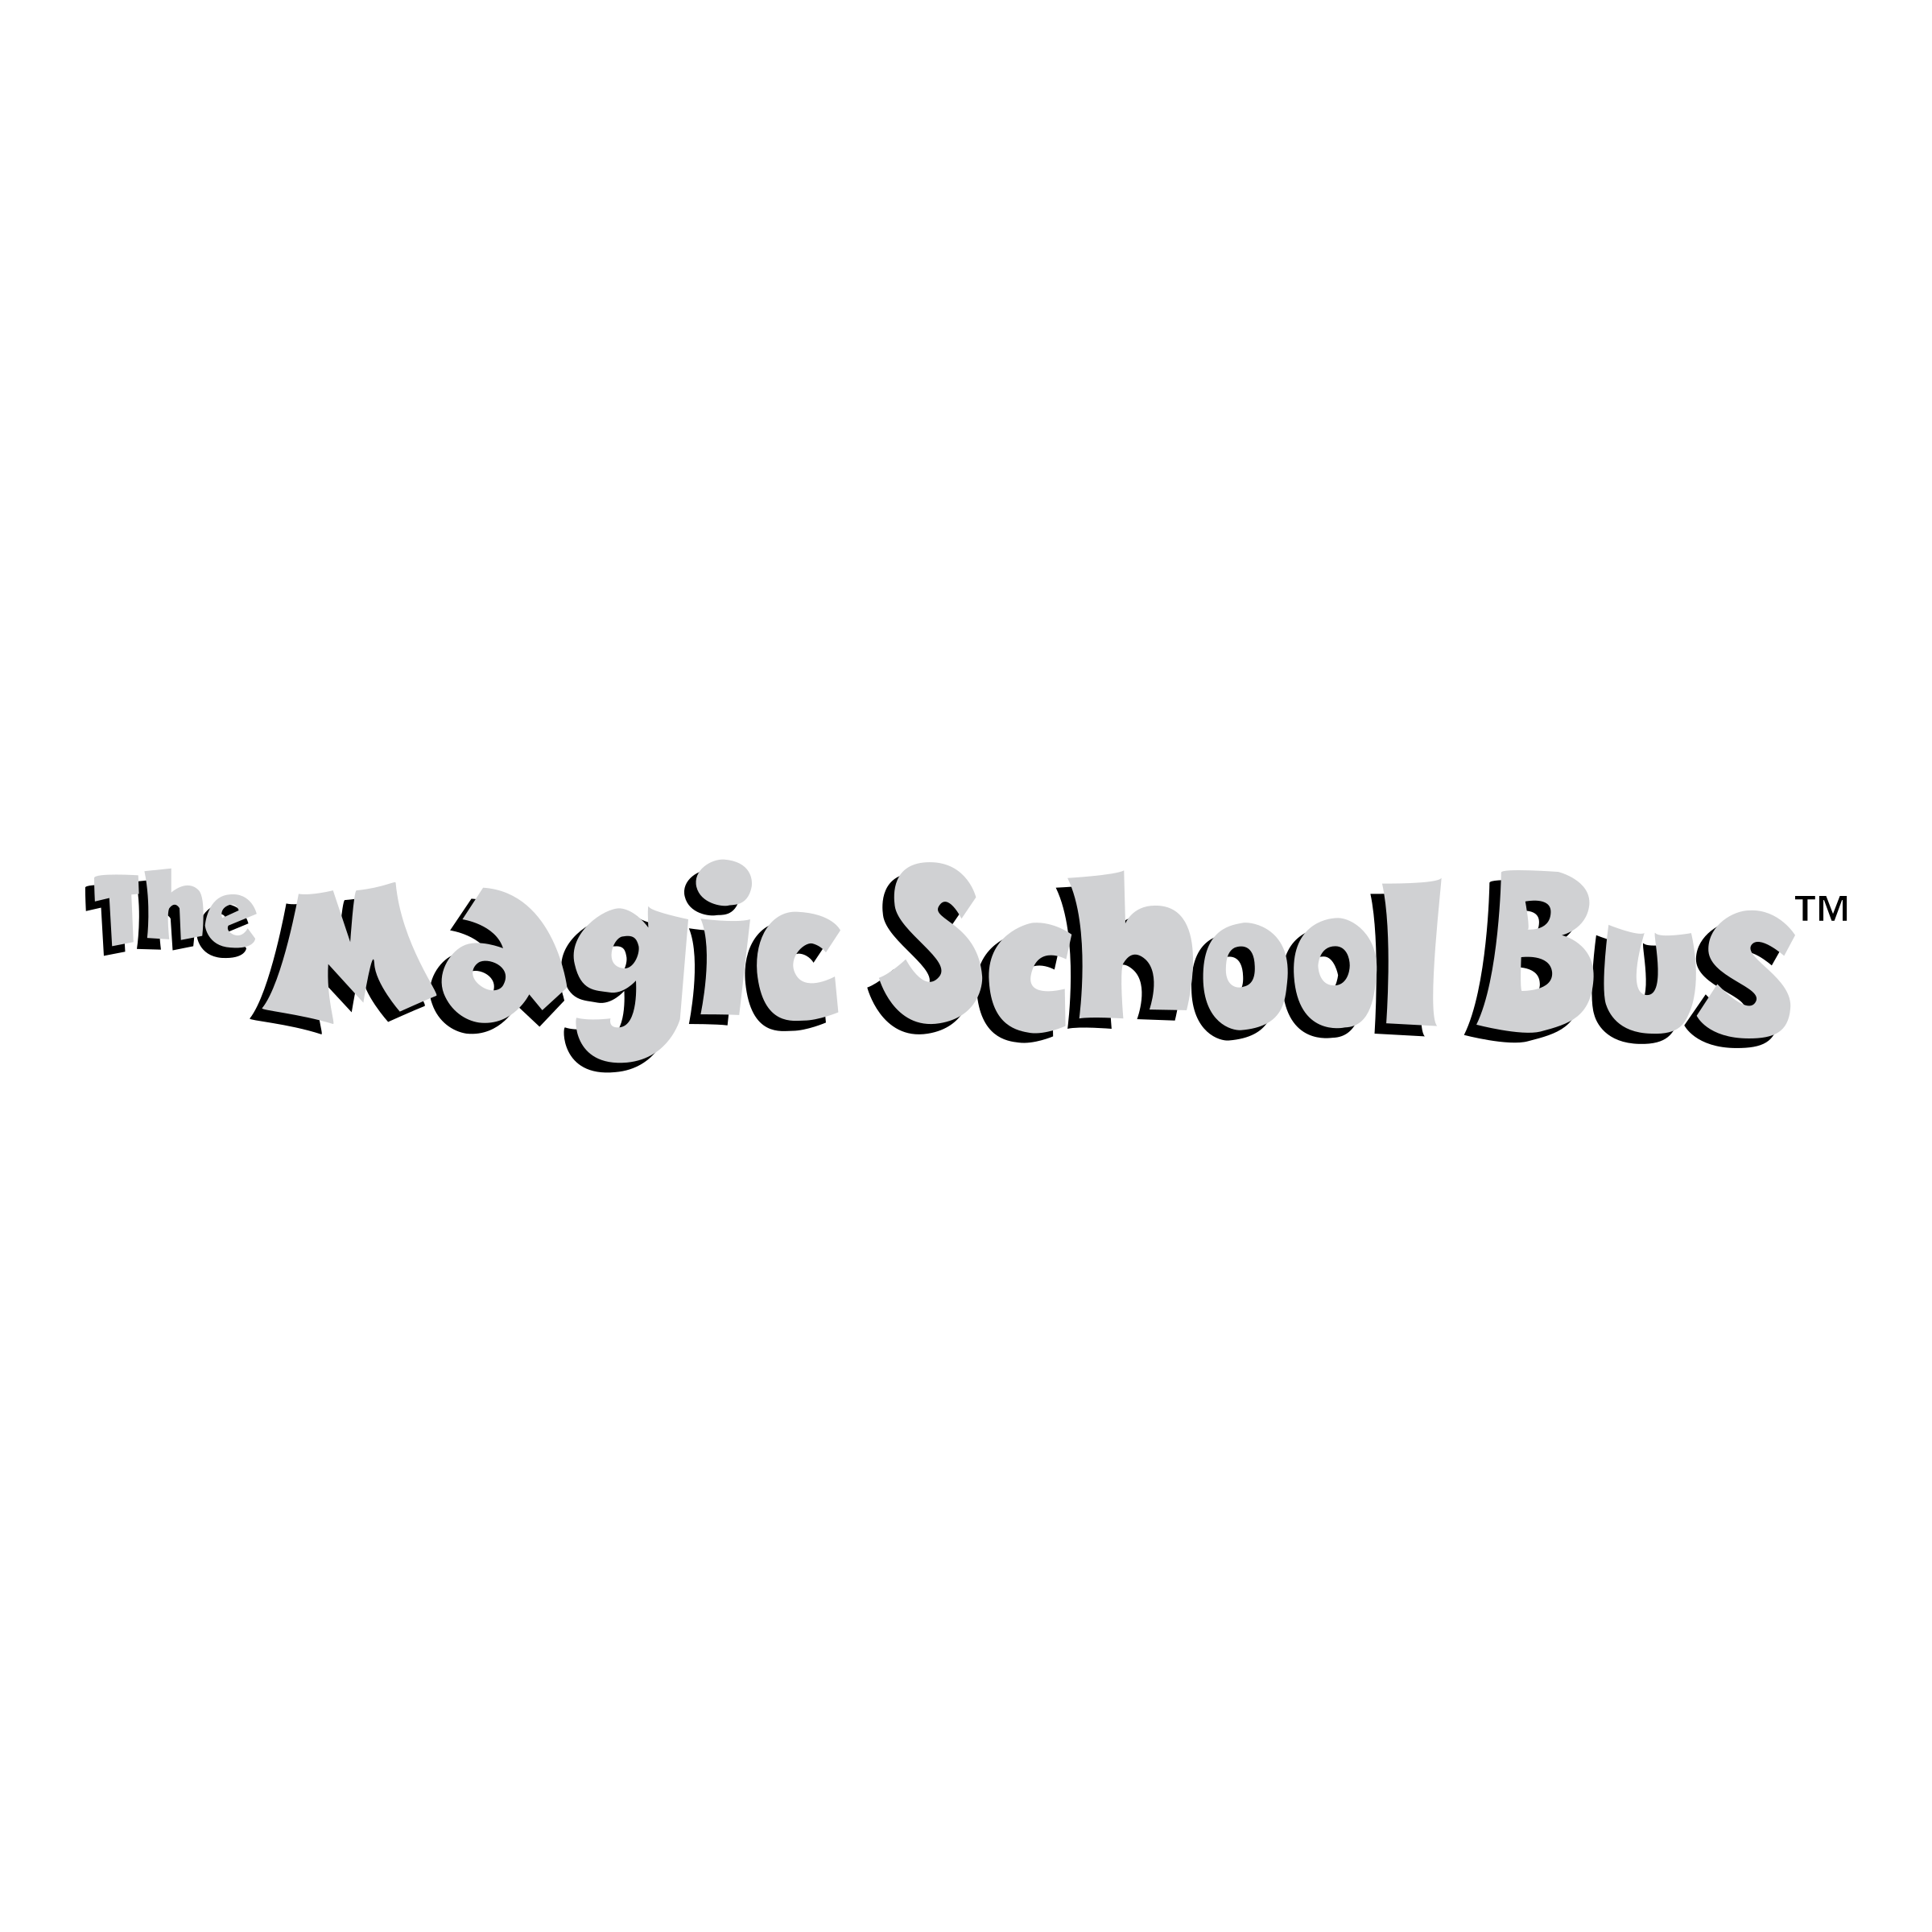 The Magic School Bus Logo Png Transparent Svg Vector Freebie Supply